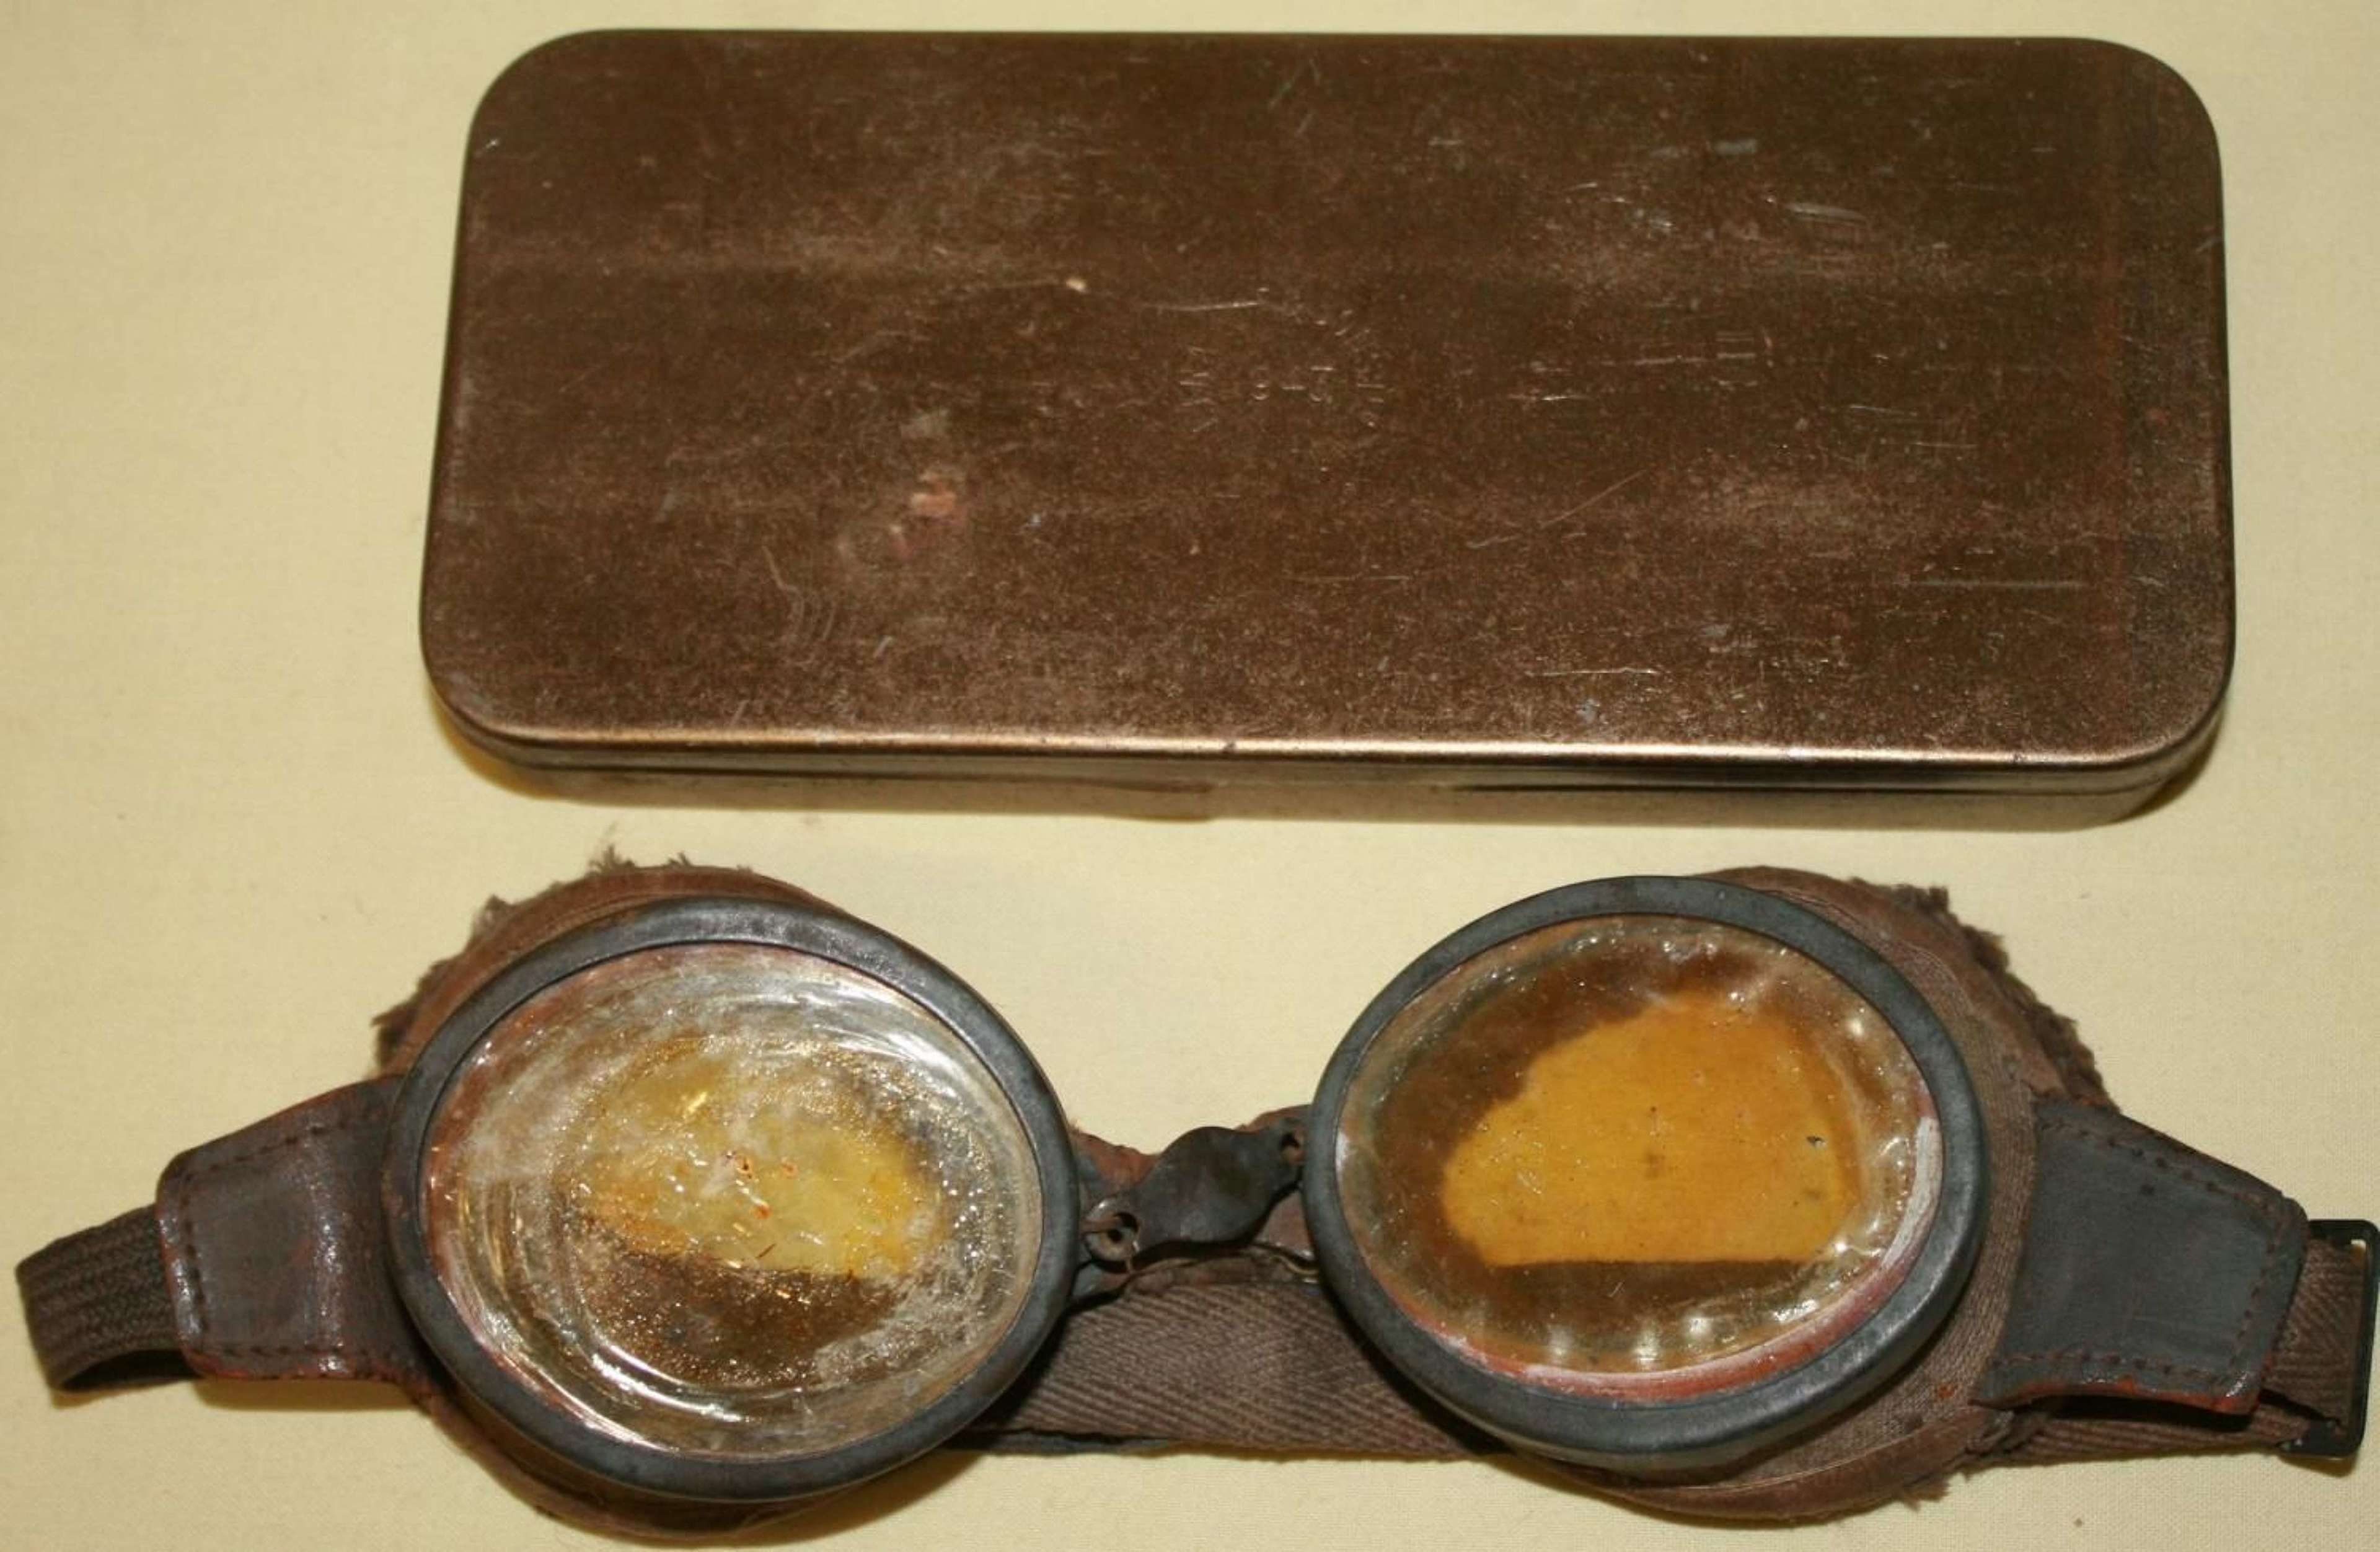 A USED PAIR OF THE BRITISH ORANGE DUST GOGGLES